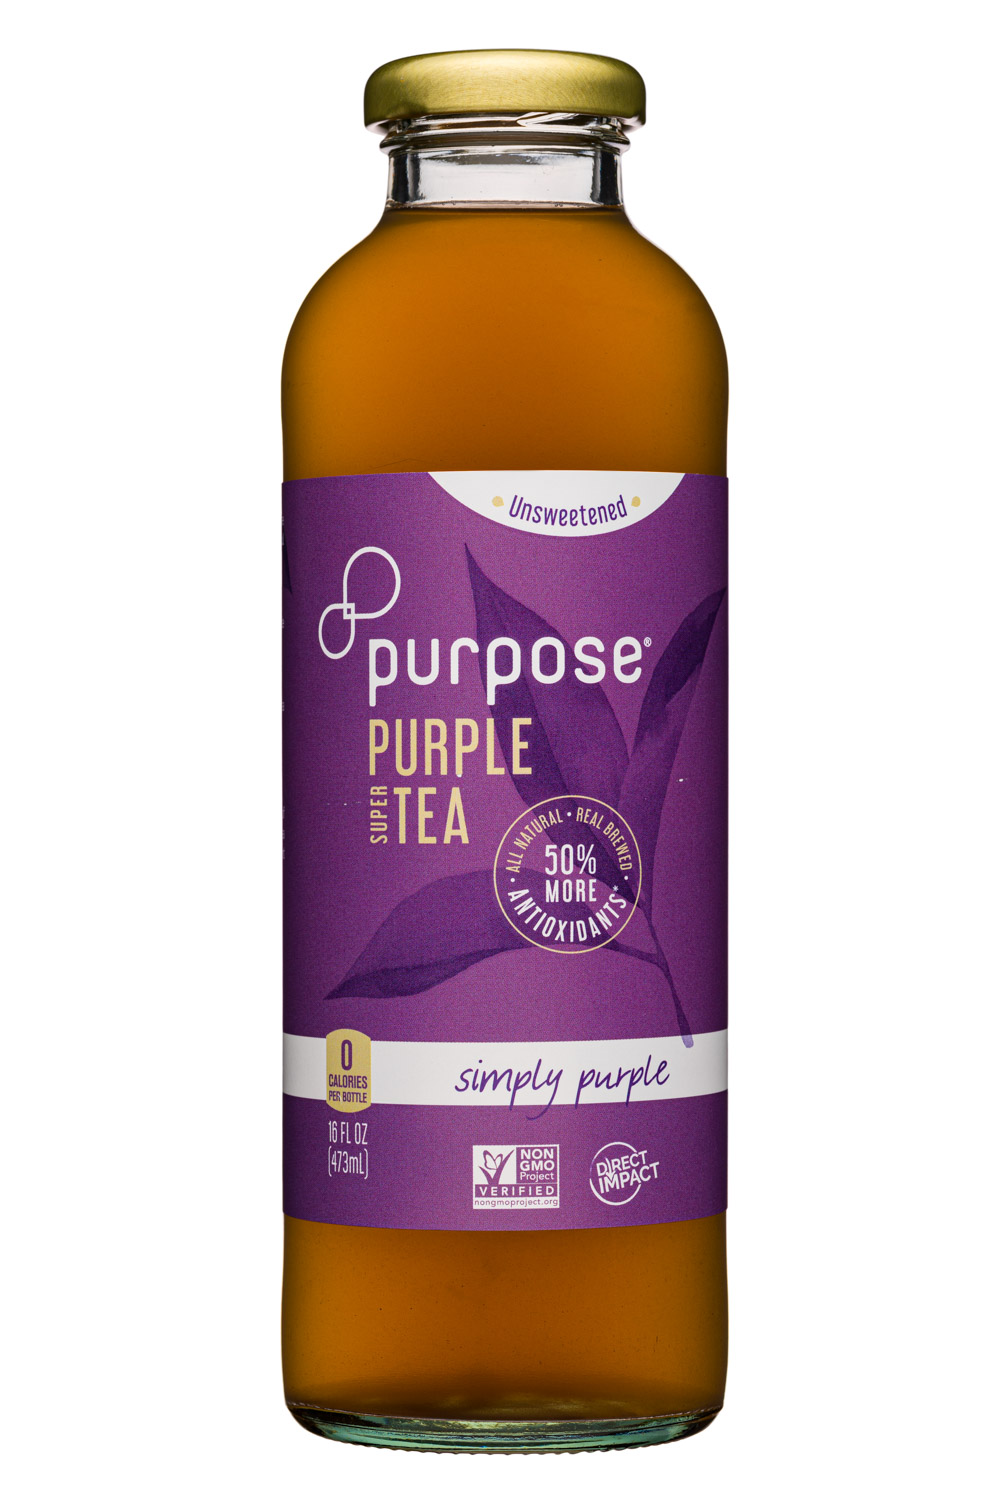 Purpose Purple Tea: PurposeTea-16oz-PurpleTea-Unsweet-SimplyPurple-Front